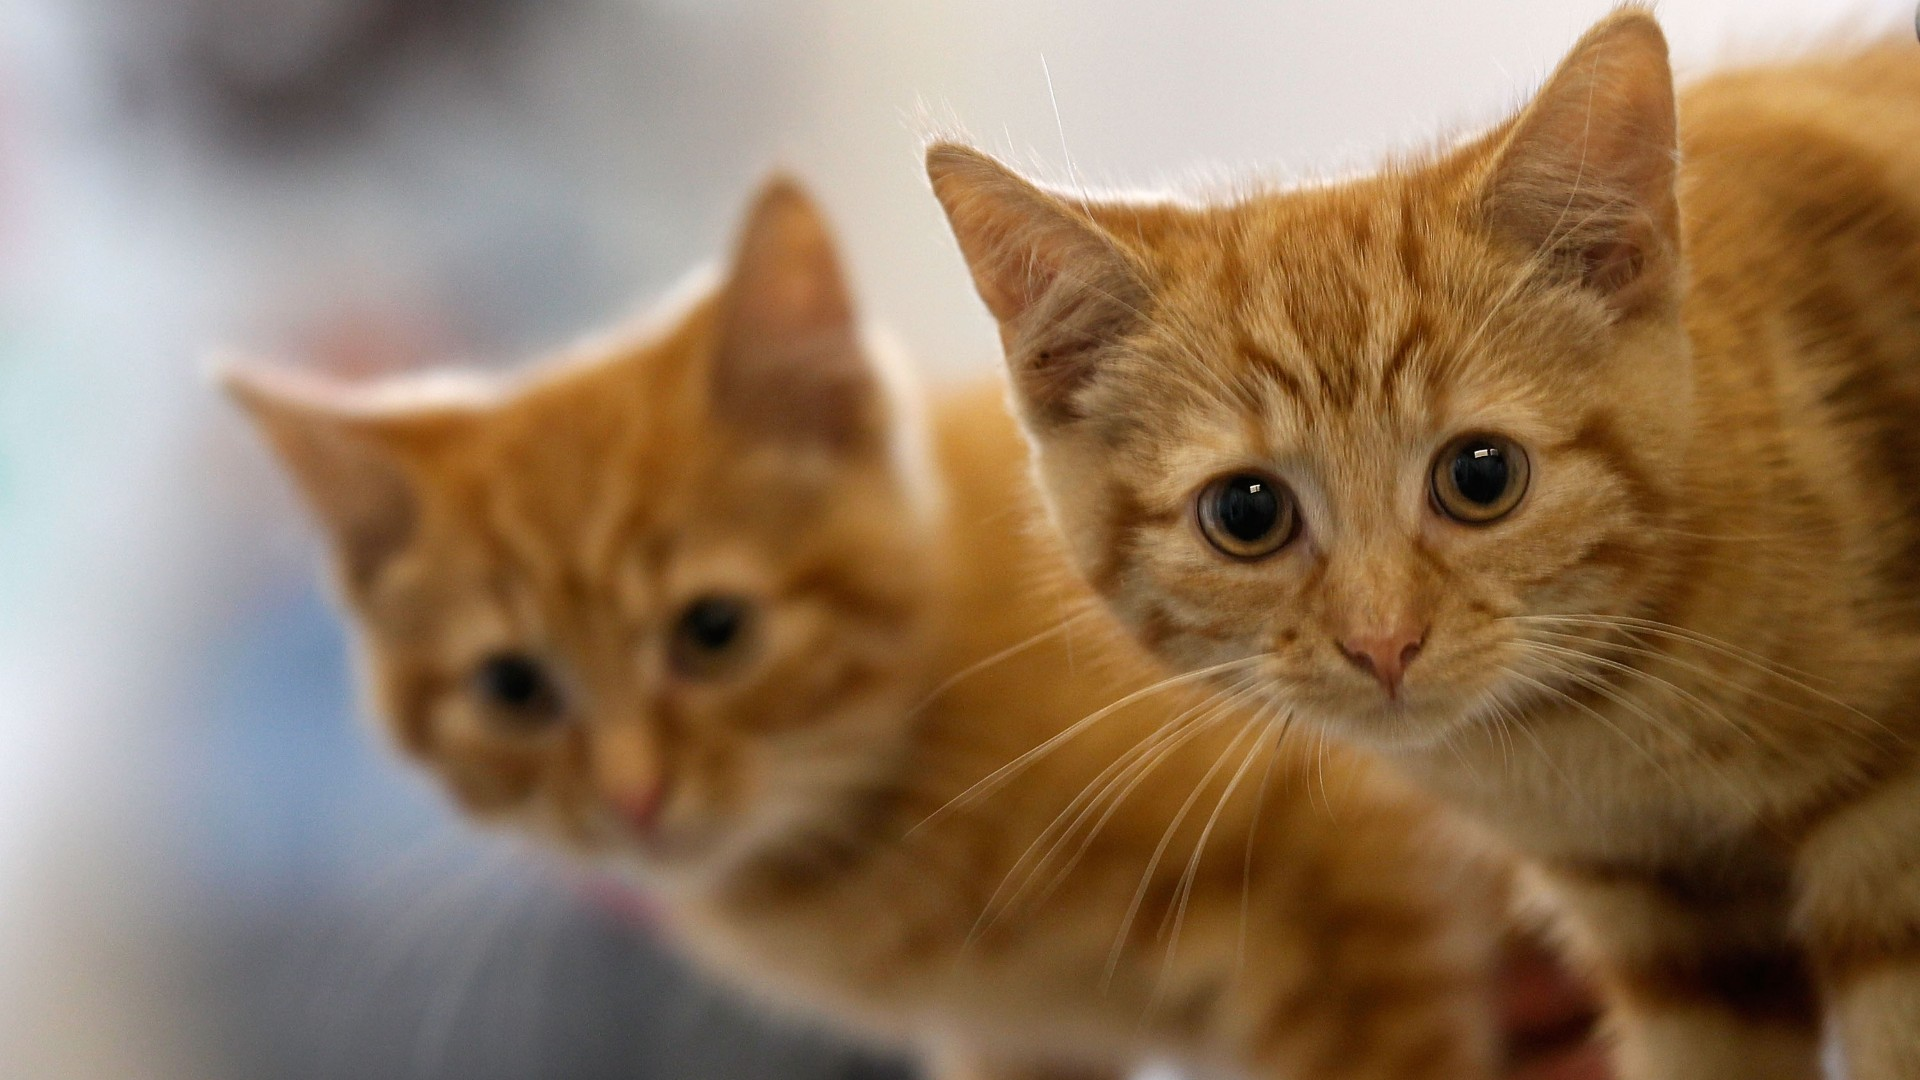 A 13-week-old kitten waits with her brother in this file photo taken on July 27, 2010 in Manchester, England. (Christopher Furlong/Getty Images))